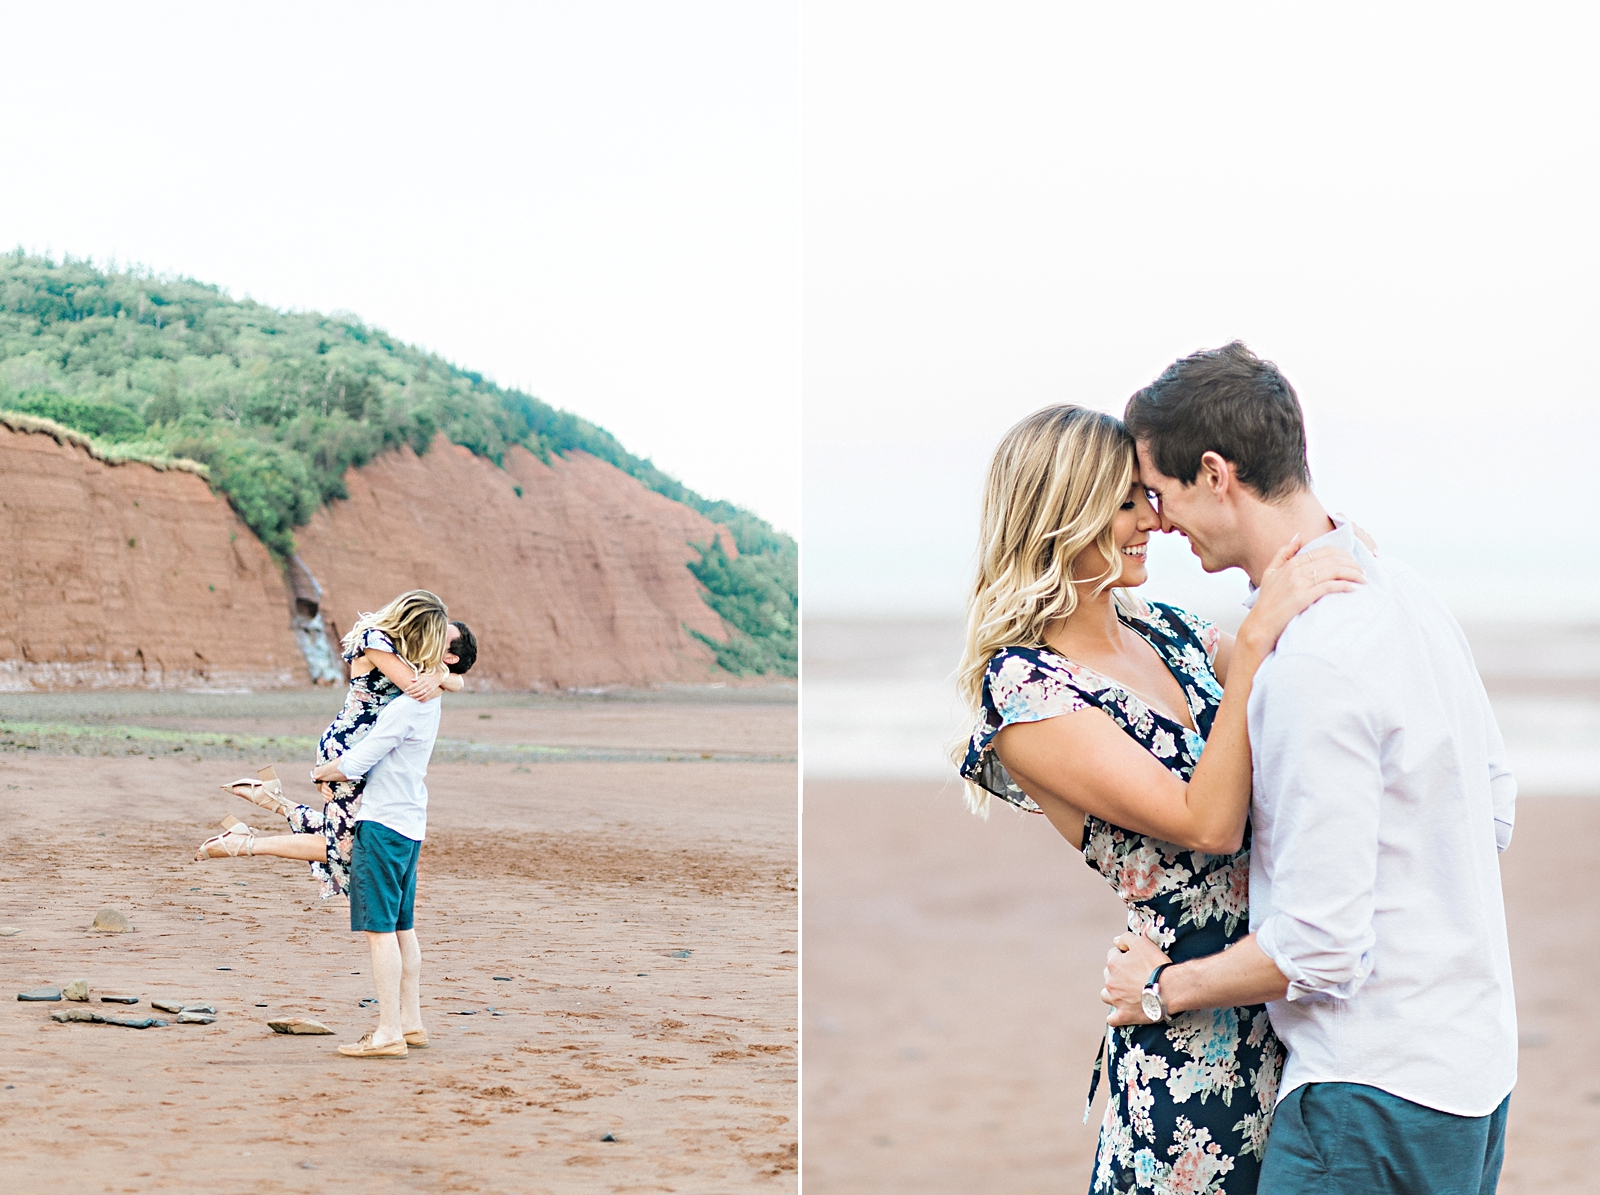 Halifax-Wedding-Photographer_Steph & Alex_Halifax Wedding Photography_Valley Engagement_15.jpg